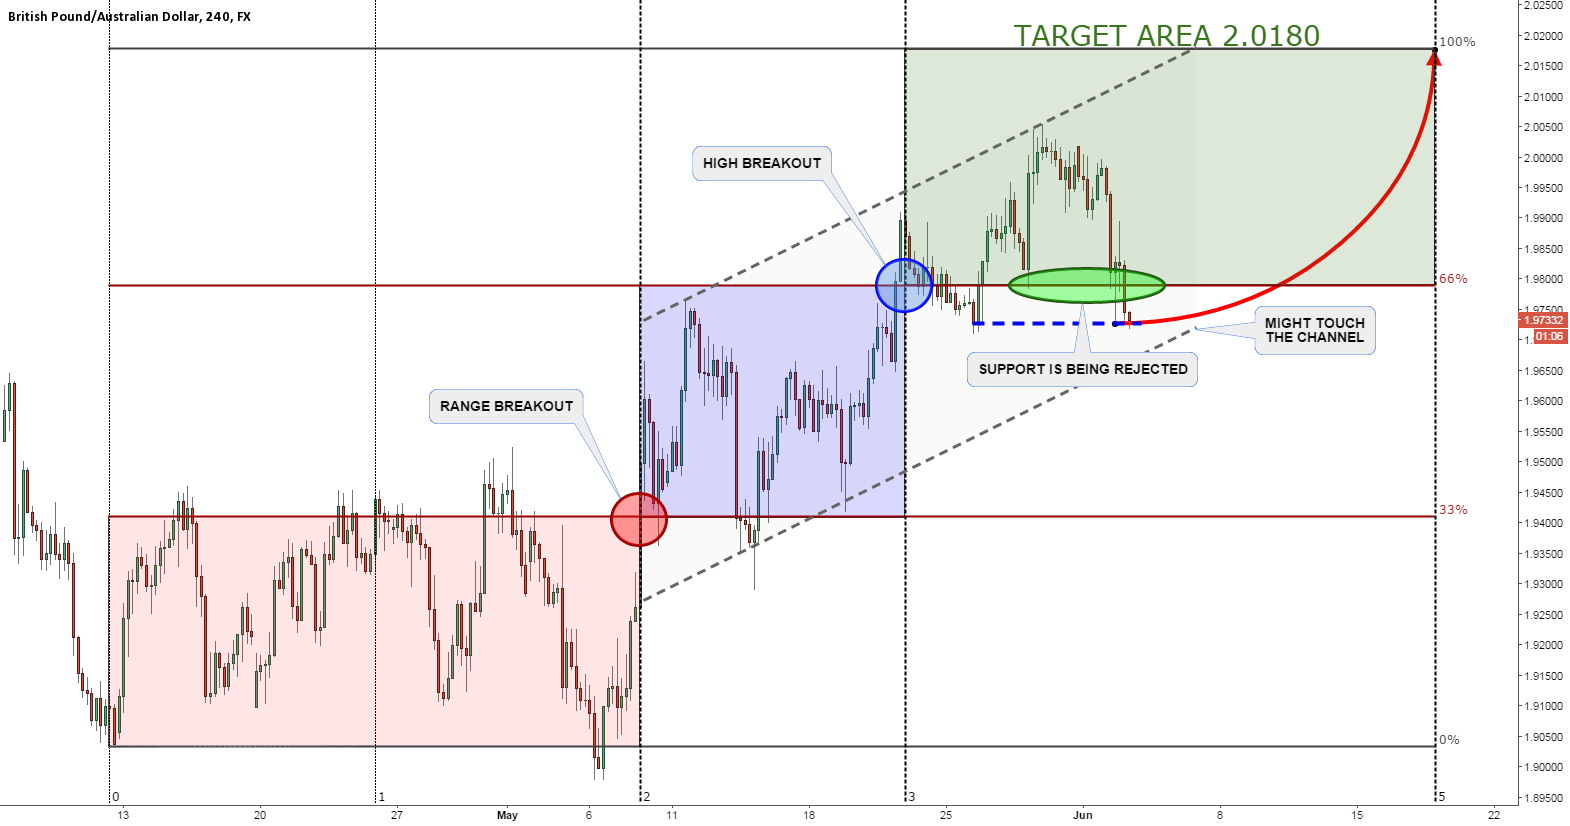 GBPAUD CORRECTIVE WAVE IS ALMOST OVER